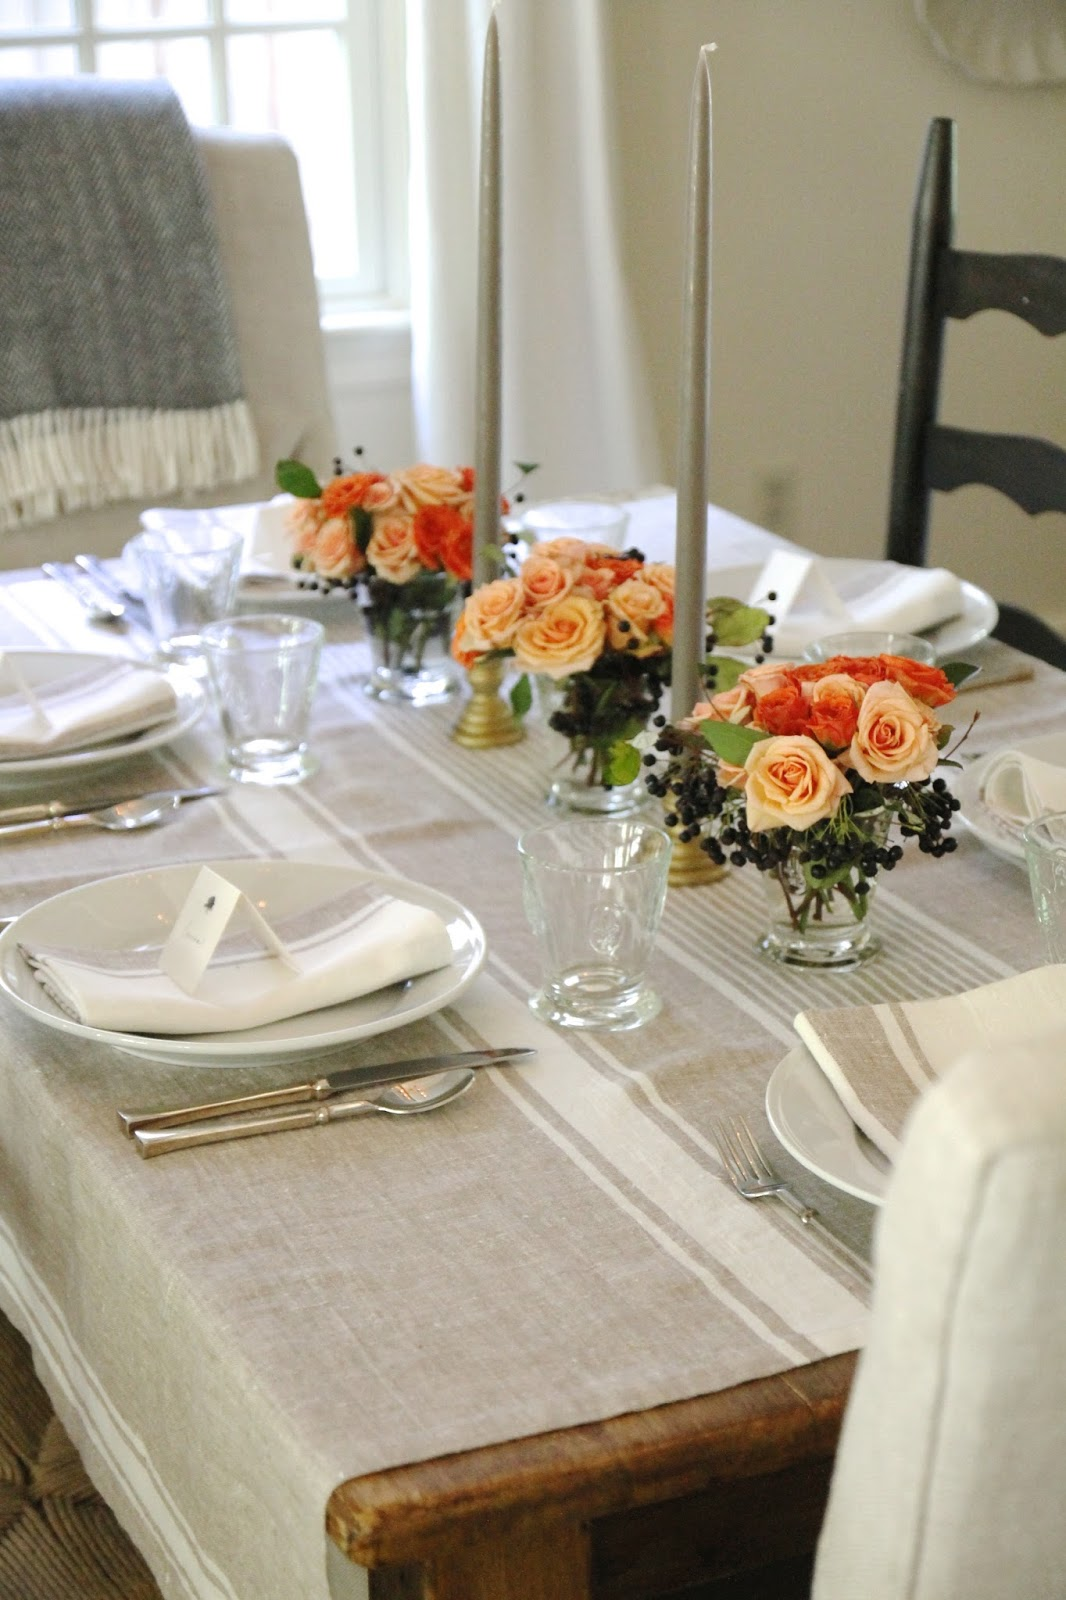 Fall Ish Table Setting | DIY Coral U0026 Peach Roses With Privet Berries |  Provence Beige Linens